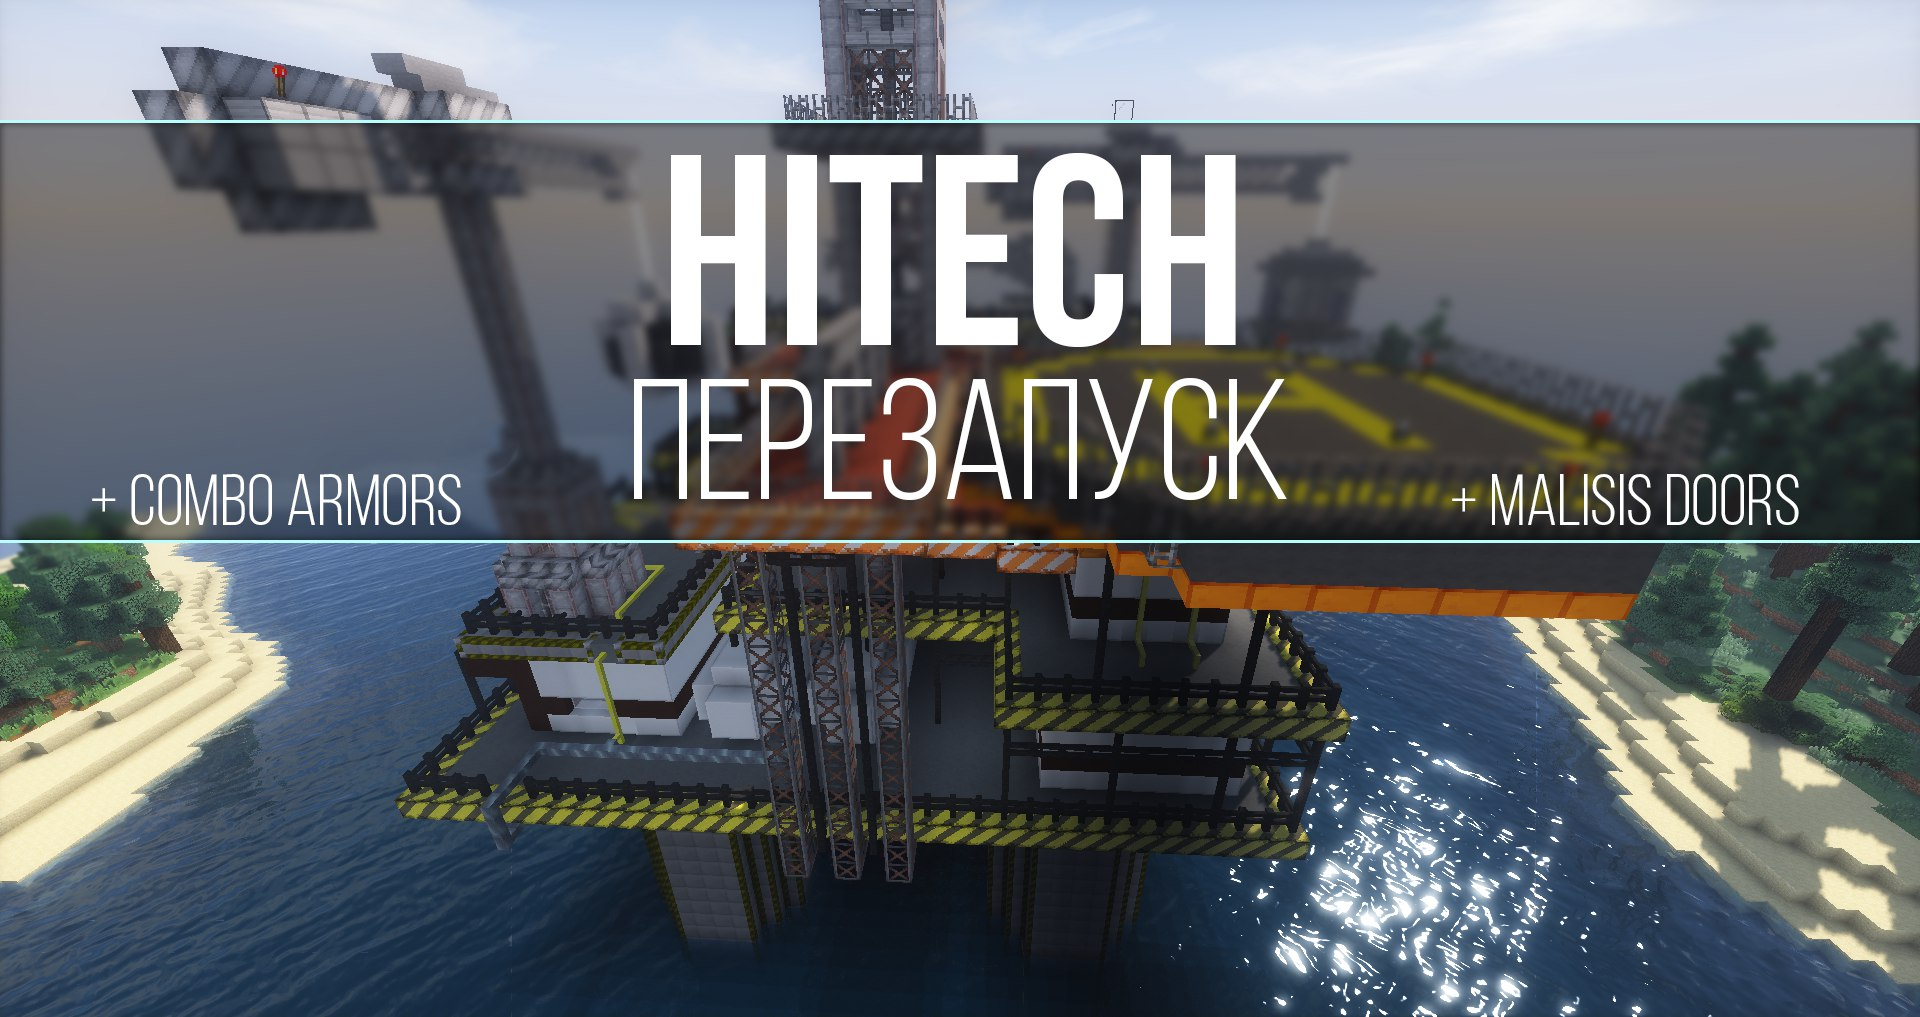 Hitech reloaded